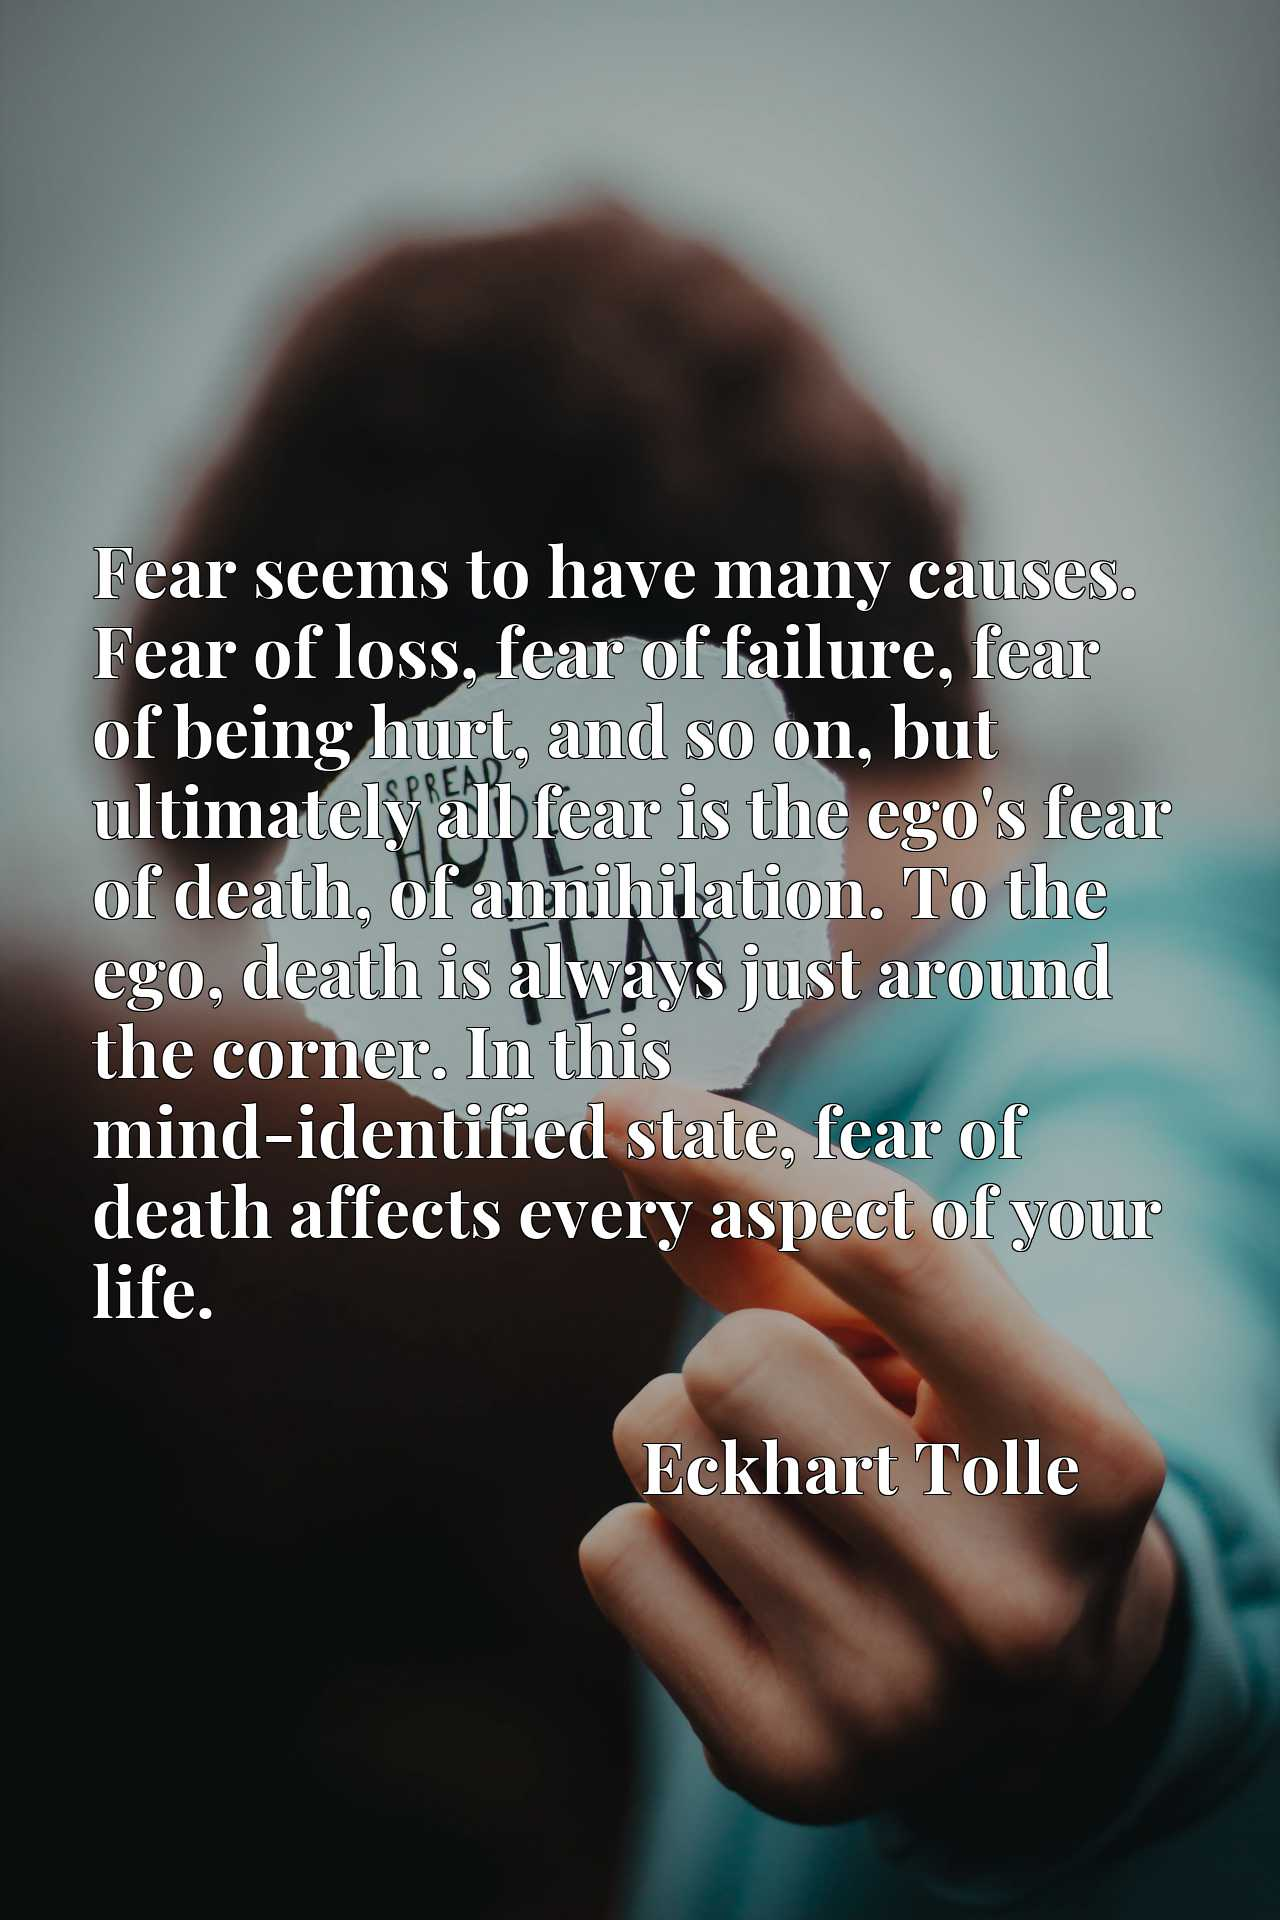 Fear seems to have many causes. Fear of loss, fear of failure, fear of being hurt, and so on, but ultimately all fear is the ego's fear of death, of annihilation. To the ego, death is always just around the corner. In this mind-identified state, fear of death affects every aspect of your life.